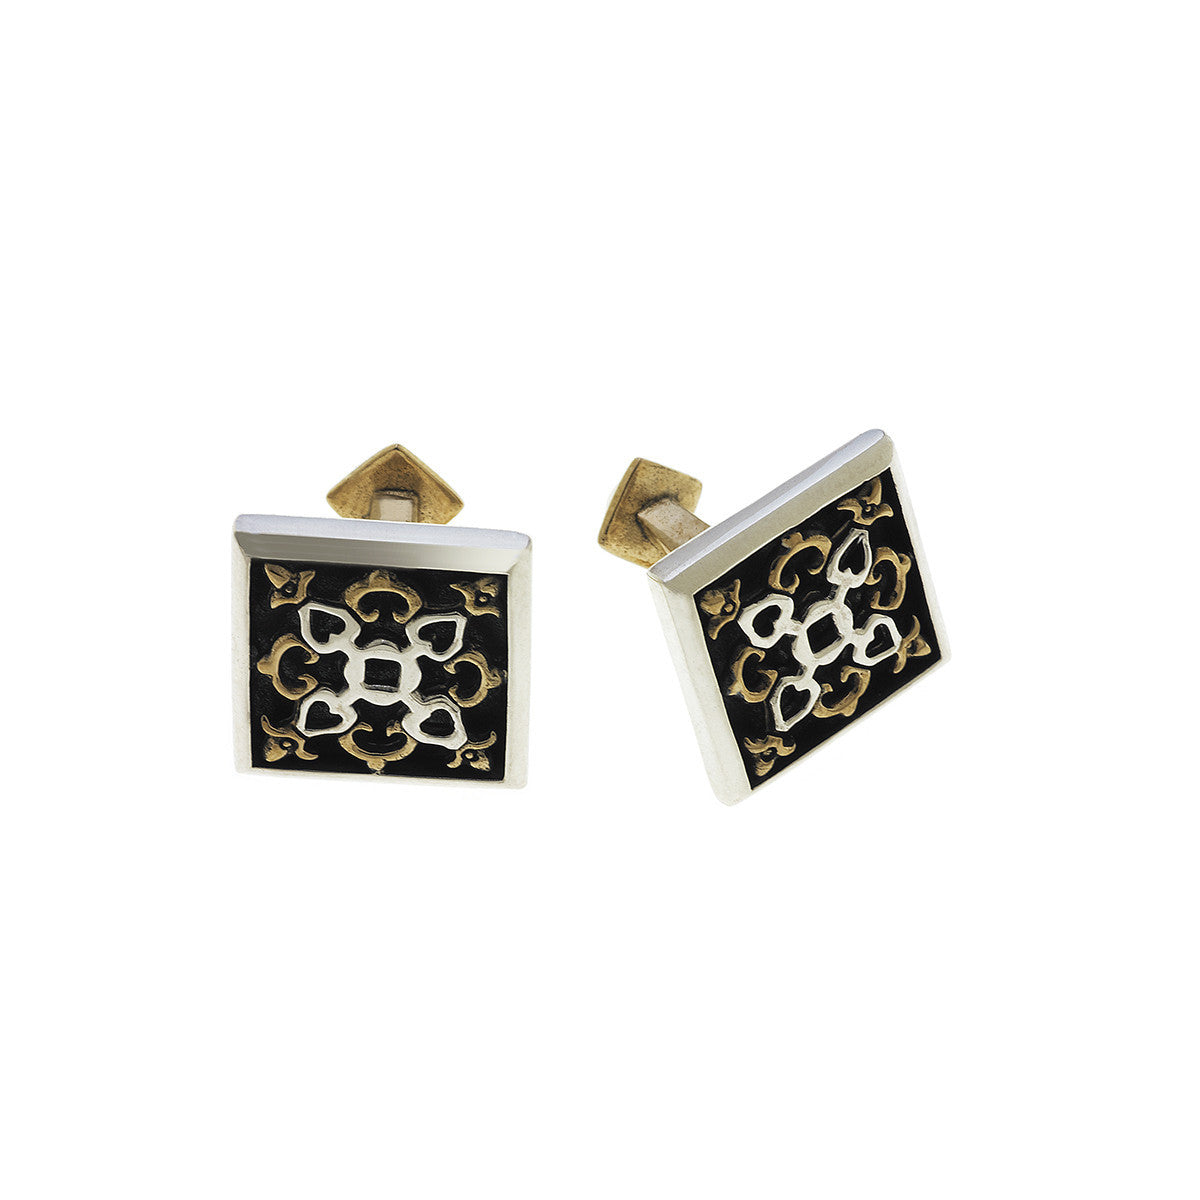 Barnes Metalwork Antique Bronze Sterling Silver Cufflinks - Cynthia Gale New York Jewelry